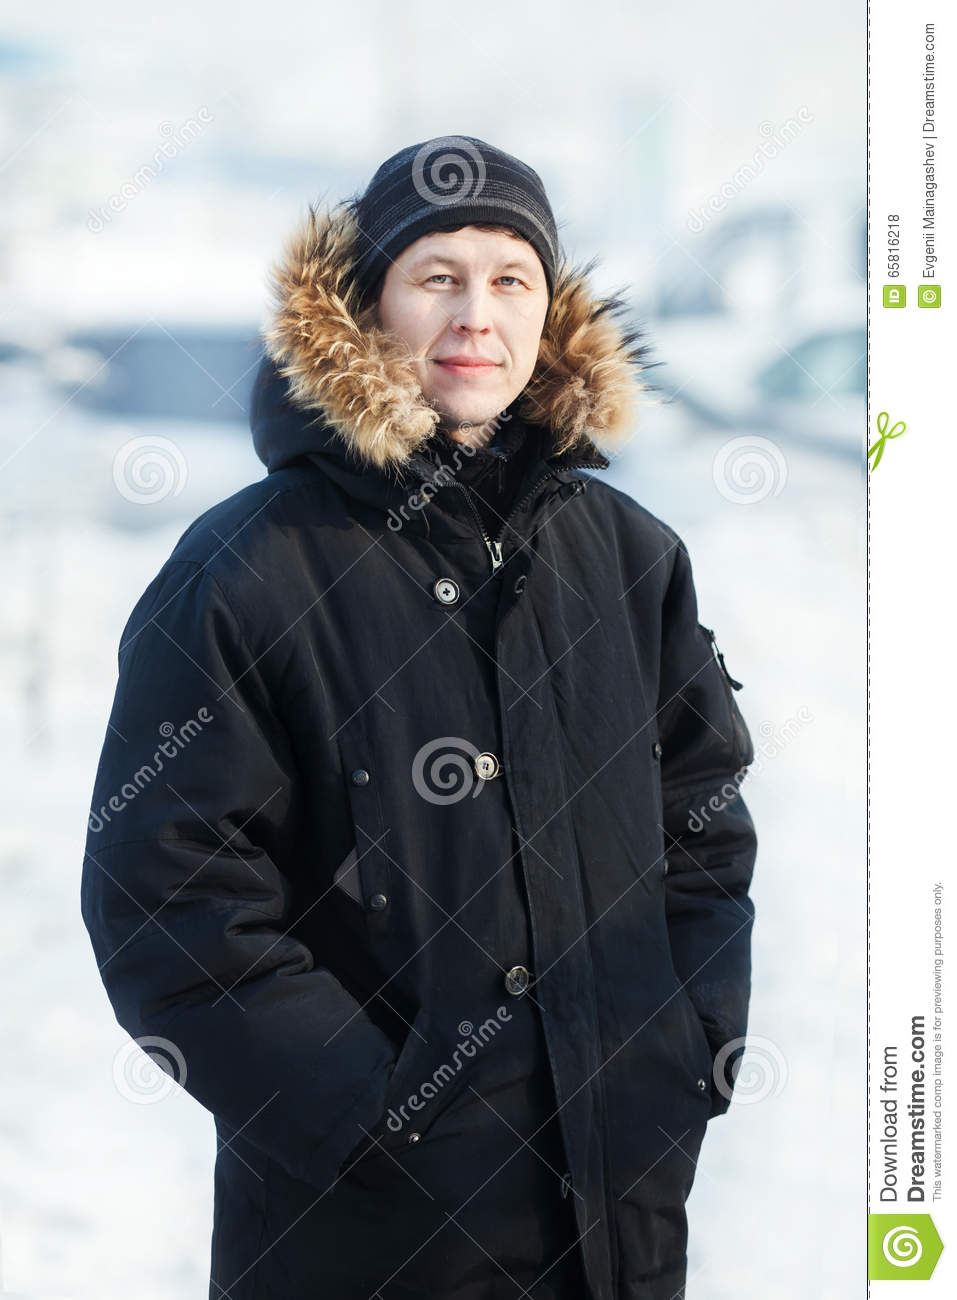 Portrait of a young Siberian man in cold winter day, wearing warm down jacket with fur hood, vertical. Snow, frost